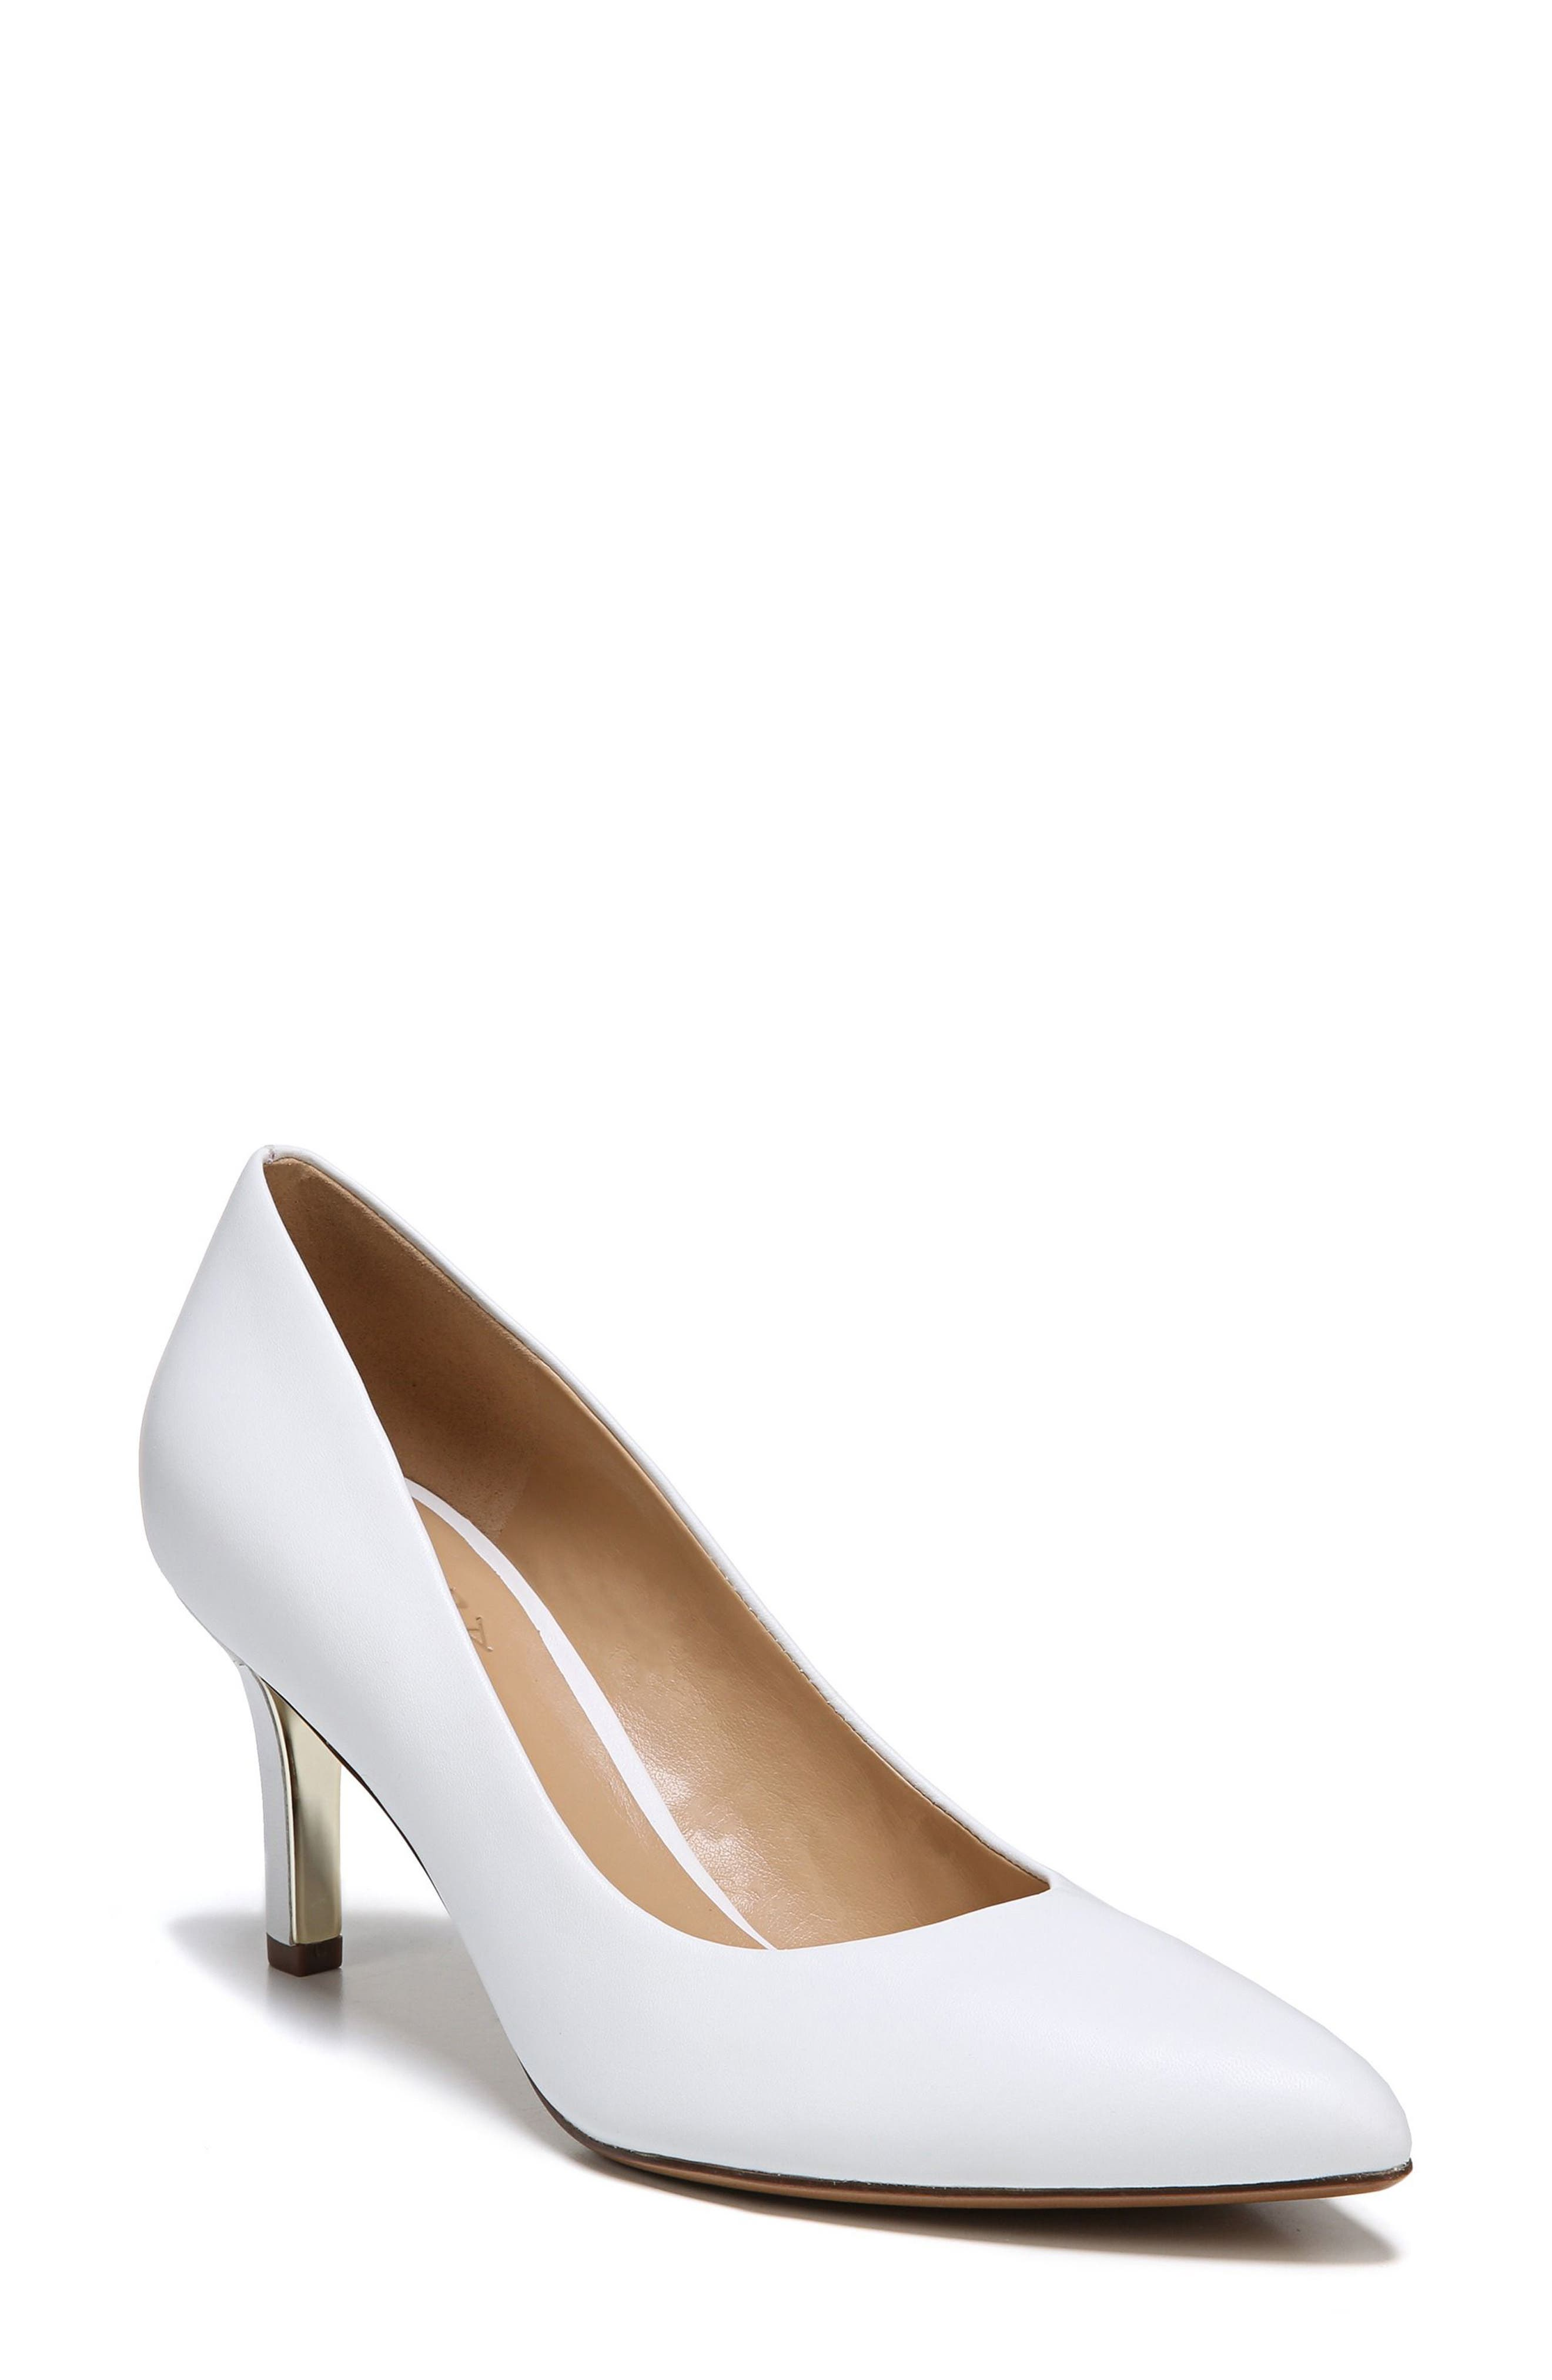 Natalie Pointy Toe Pump,                             Main thumbnail 1, color,                             WHITE LEATHER